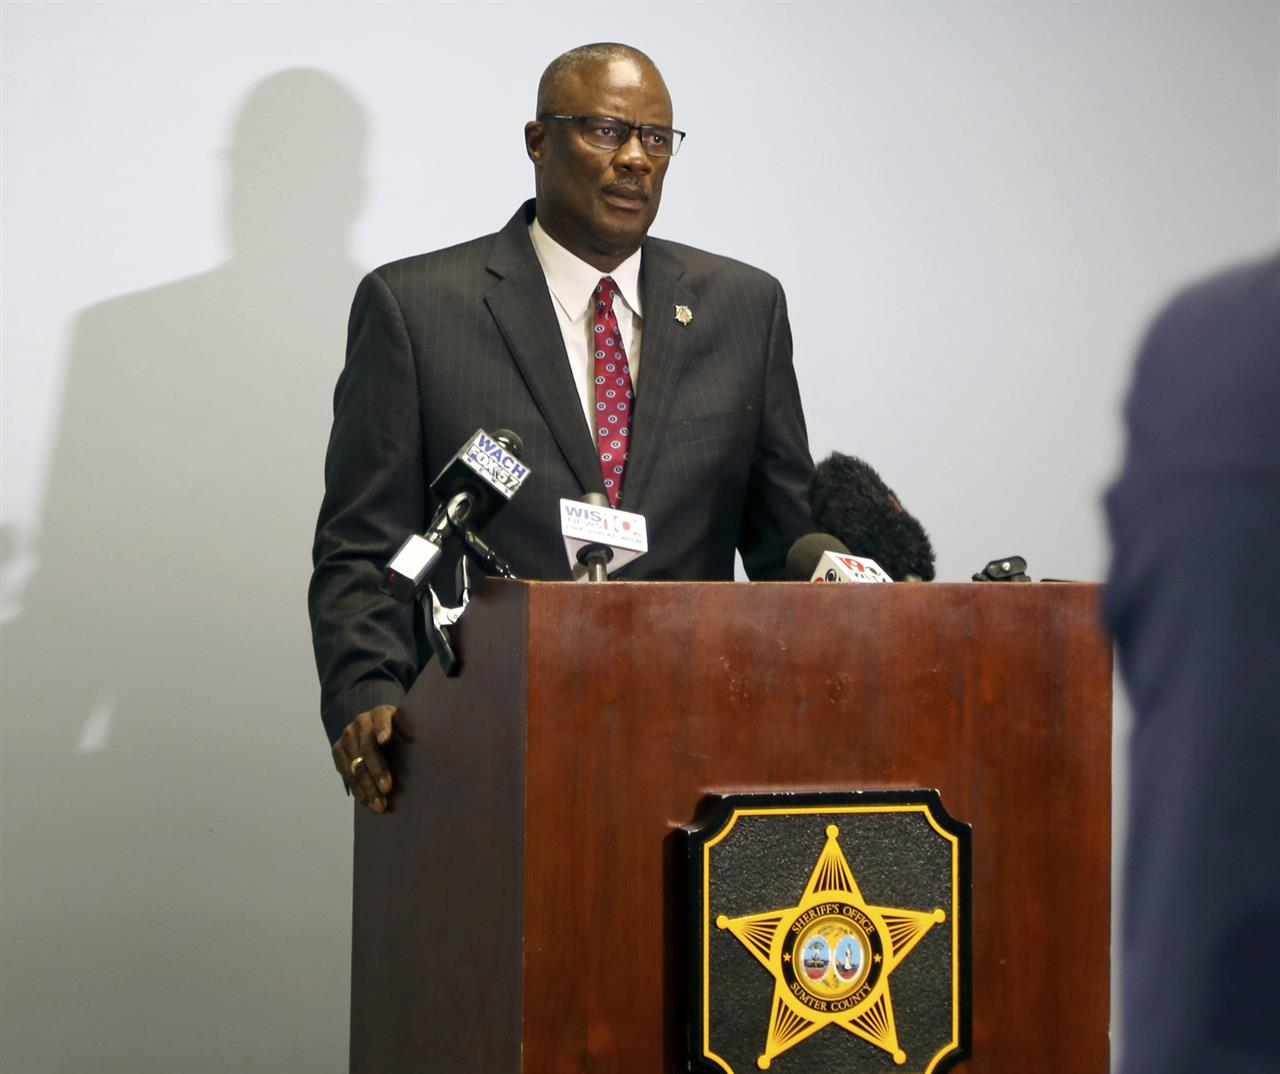 Sumter County Sheriff Anthony Dennis releases the names of two people found shot to death near Interstate 95 more than 44 years ago at a news conference on Thursday, Jan. 21, 2021, in Sumter, S.C. DNA testing helped identify the victims, whose killer has not been found. (Kayla Green/The Item via AP)